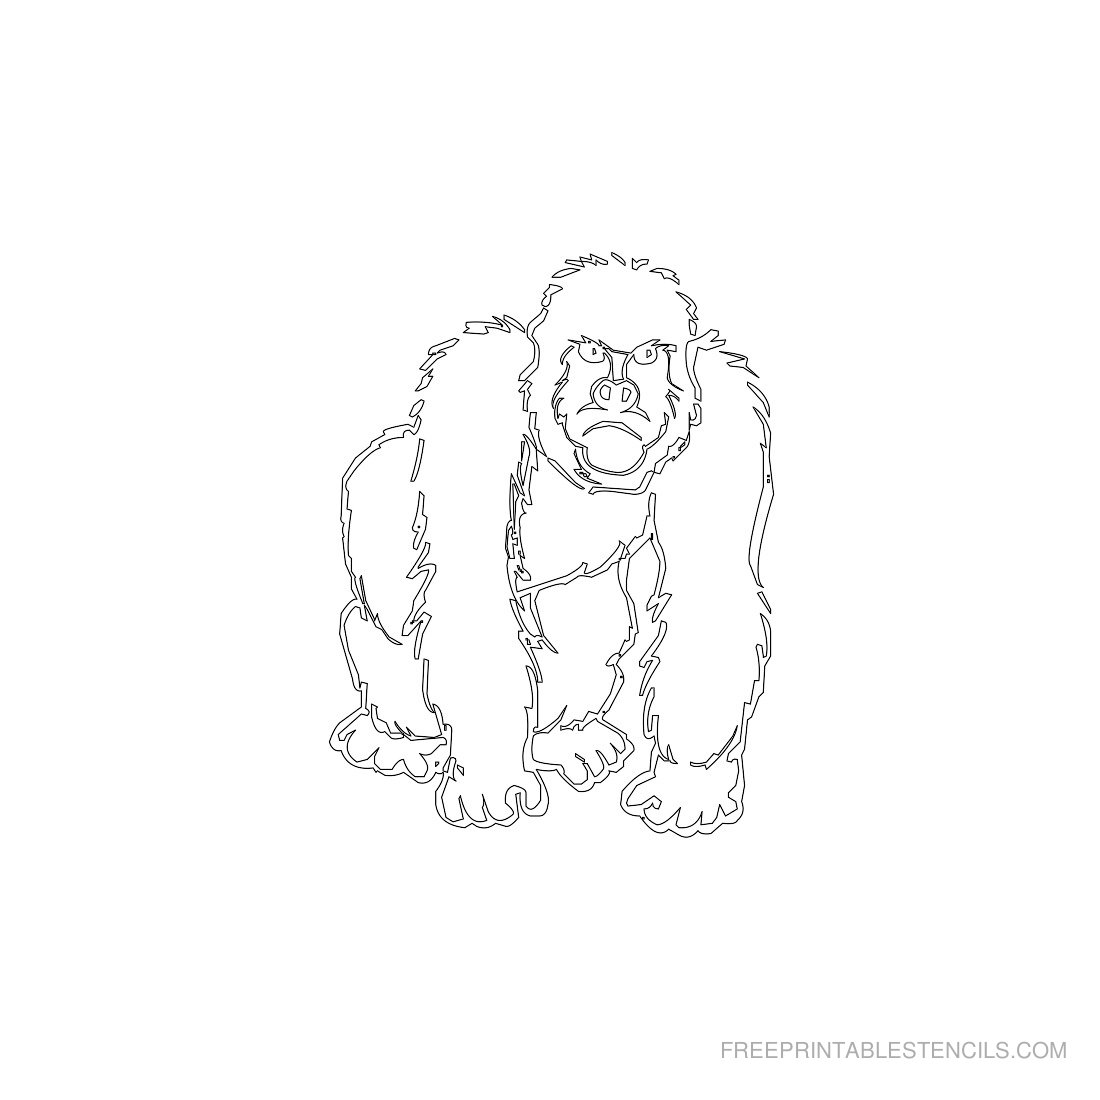 Free Printable Animal Stencil Gorilla